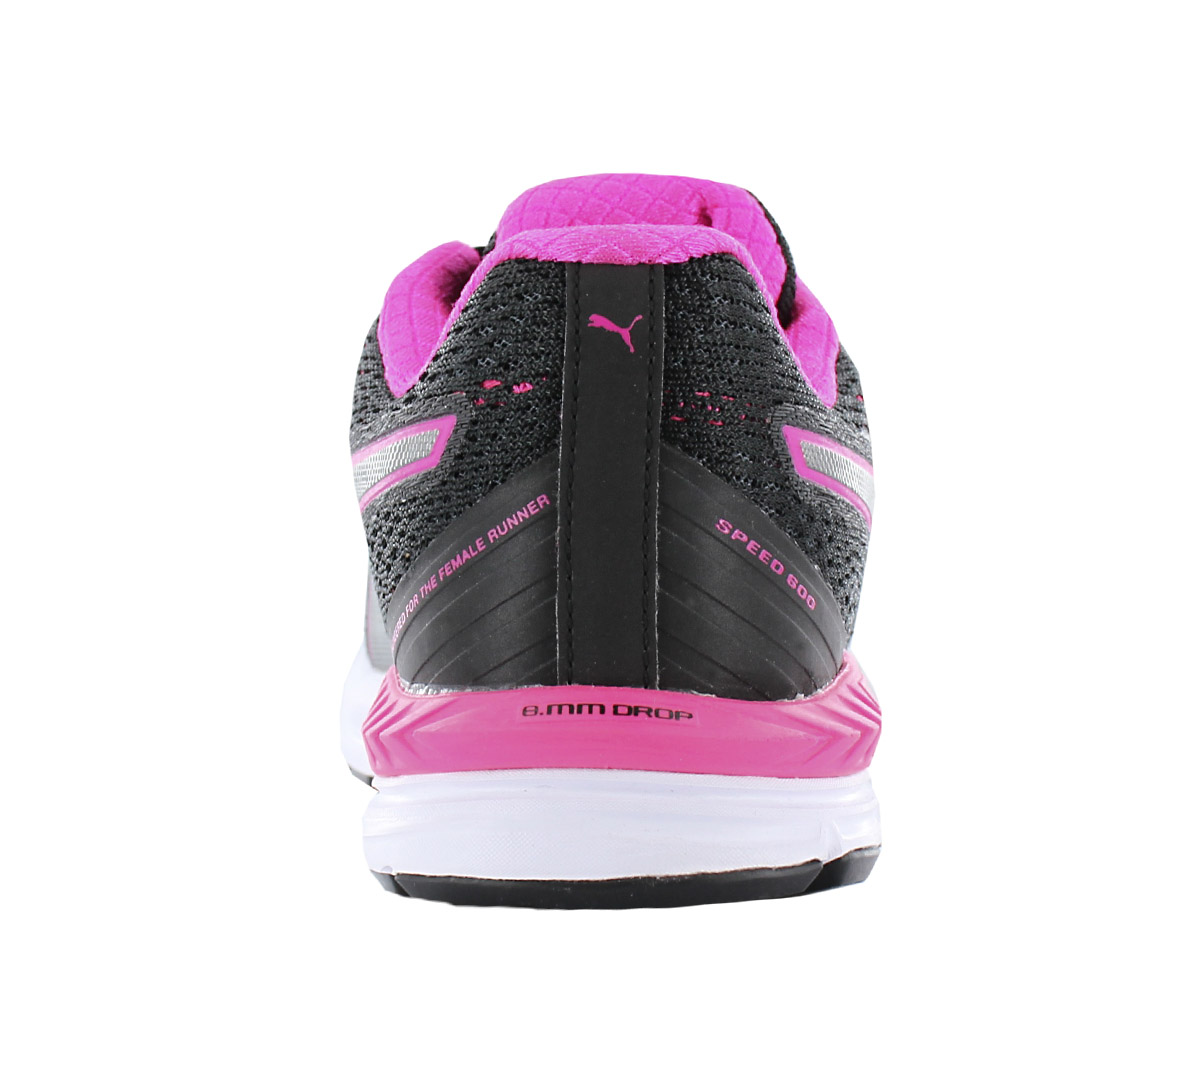 Details about NEW Puma Speed 600 Ignite Damen 188789 07 Women''s Shoes Trainers Sneakers SALE